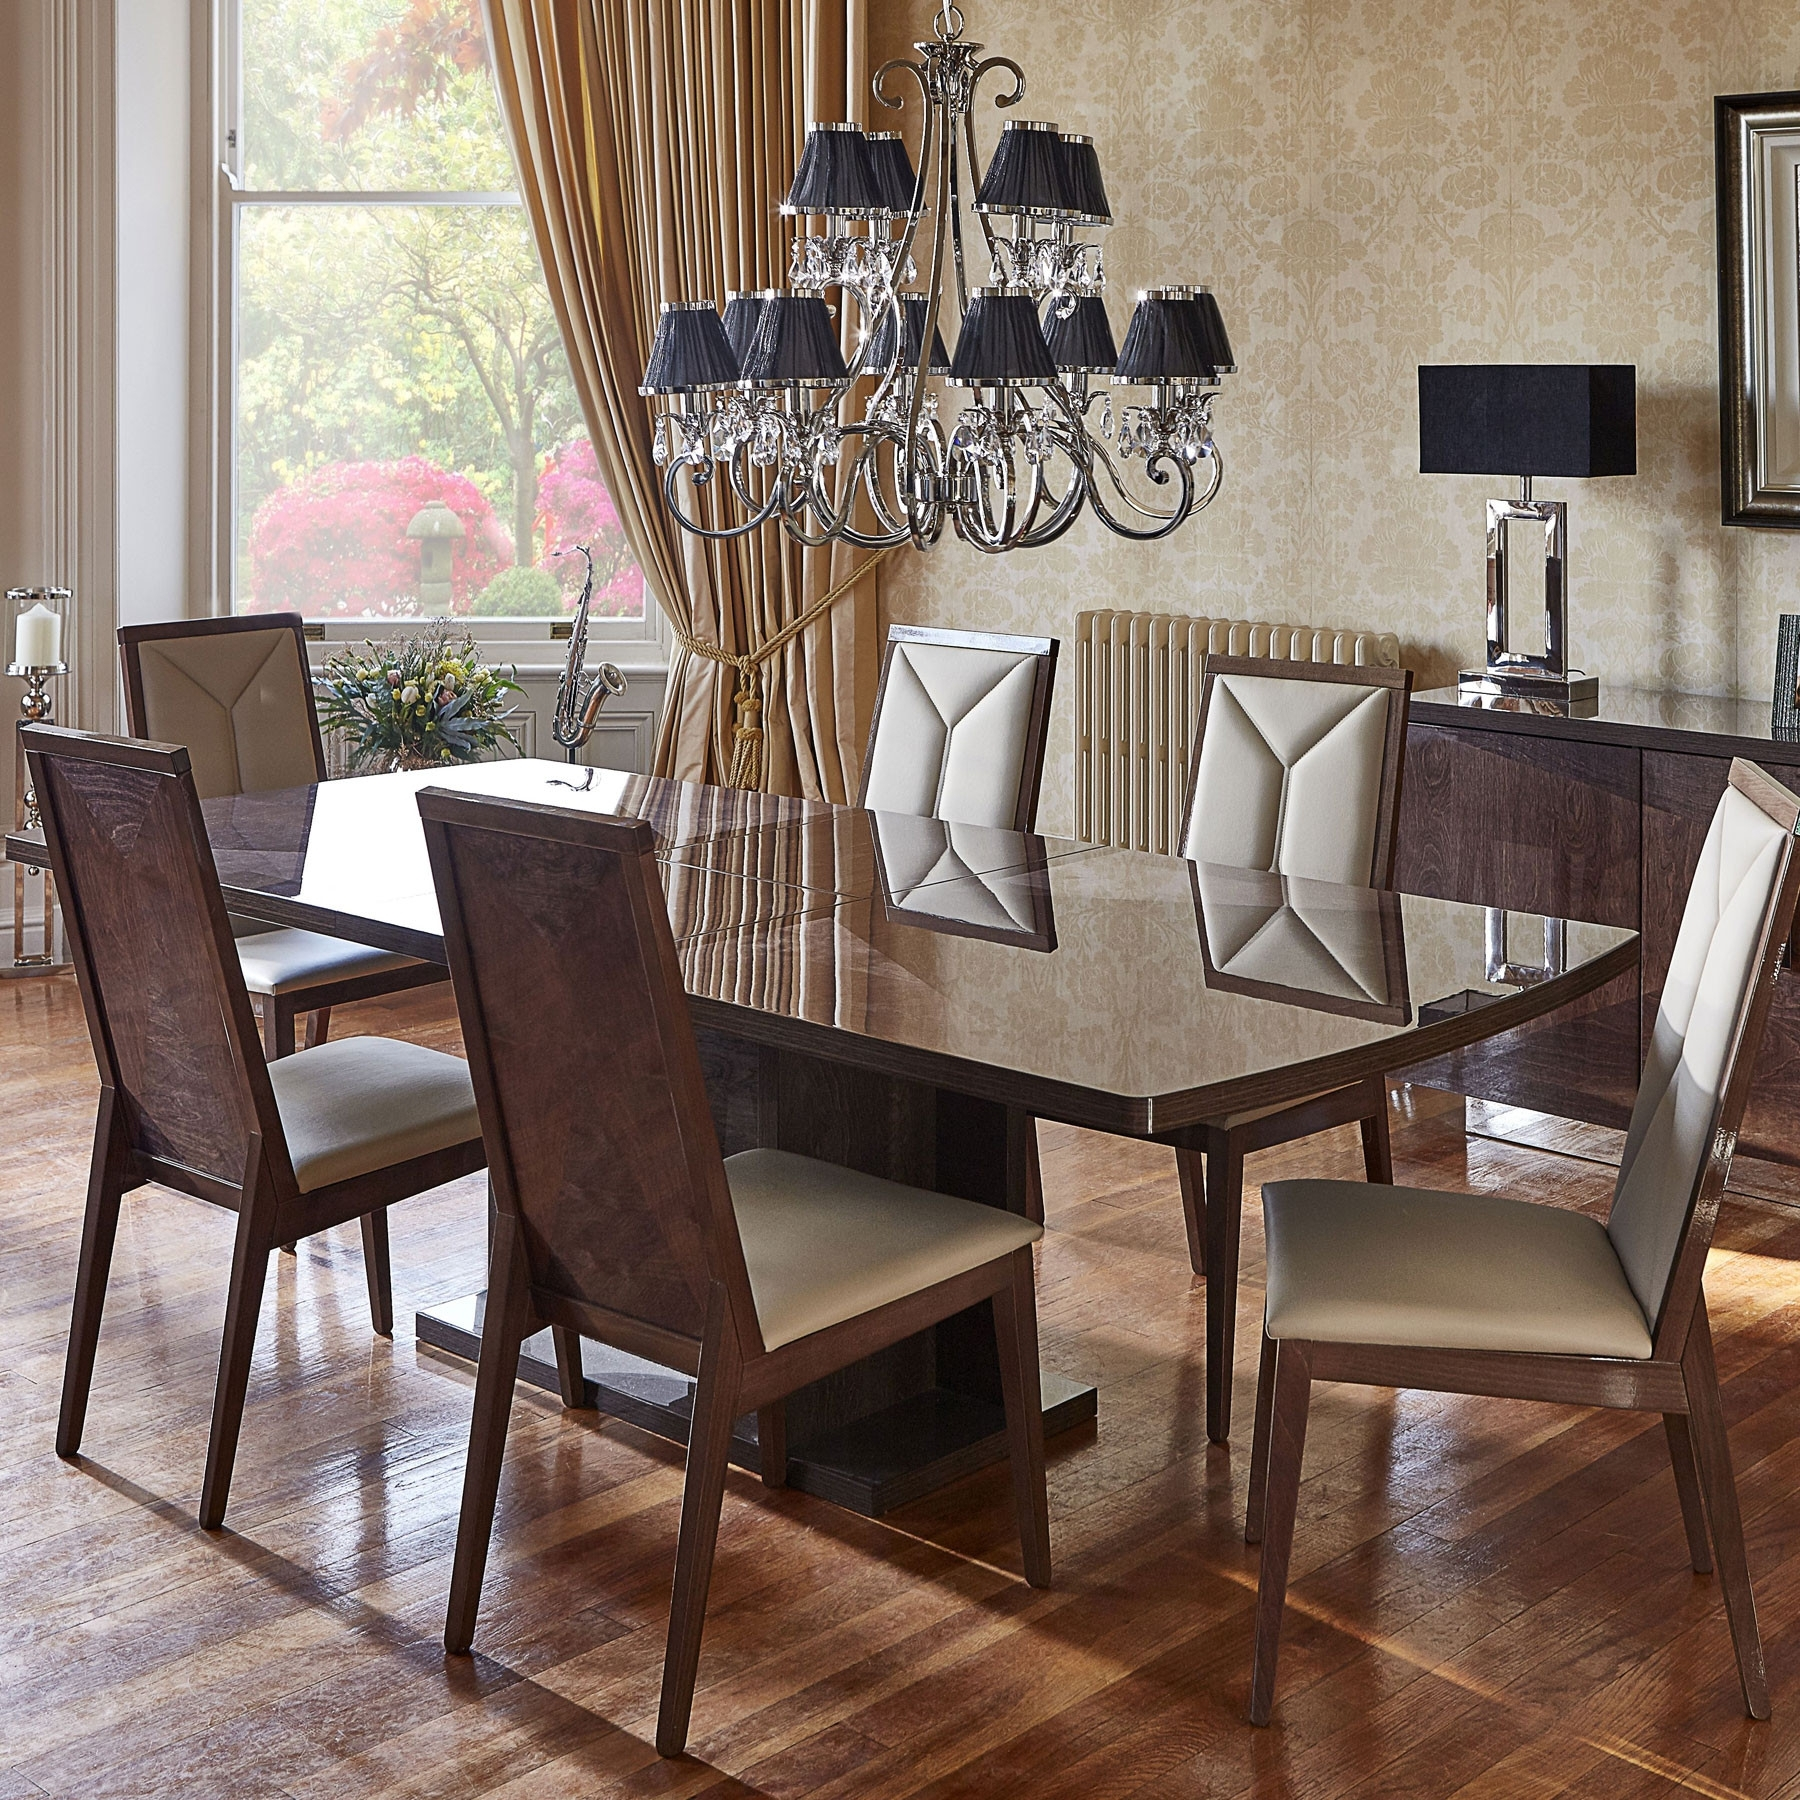 High Gloss Dining Room Furniture With Regard To Recent Vogue High Gloss Extending Dining Table & 6 Chairs (Gallery 7 of 25)